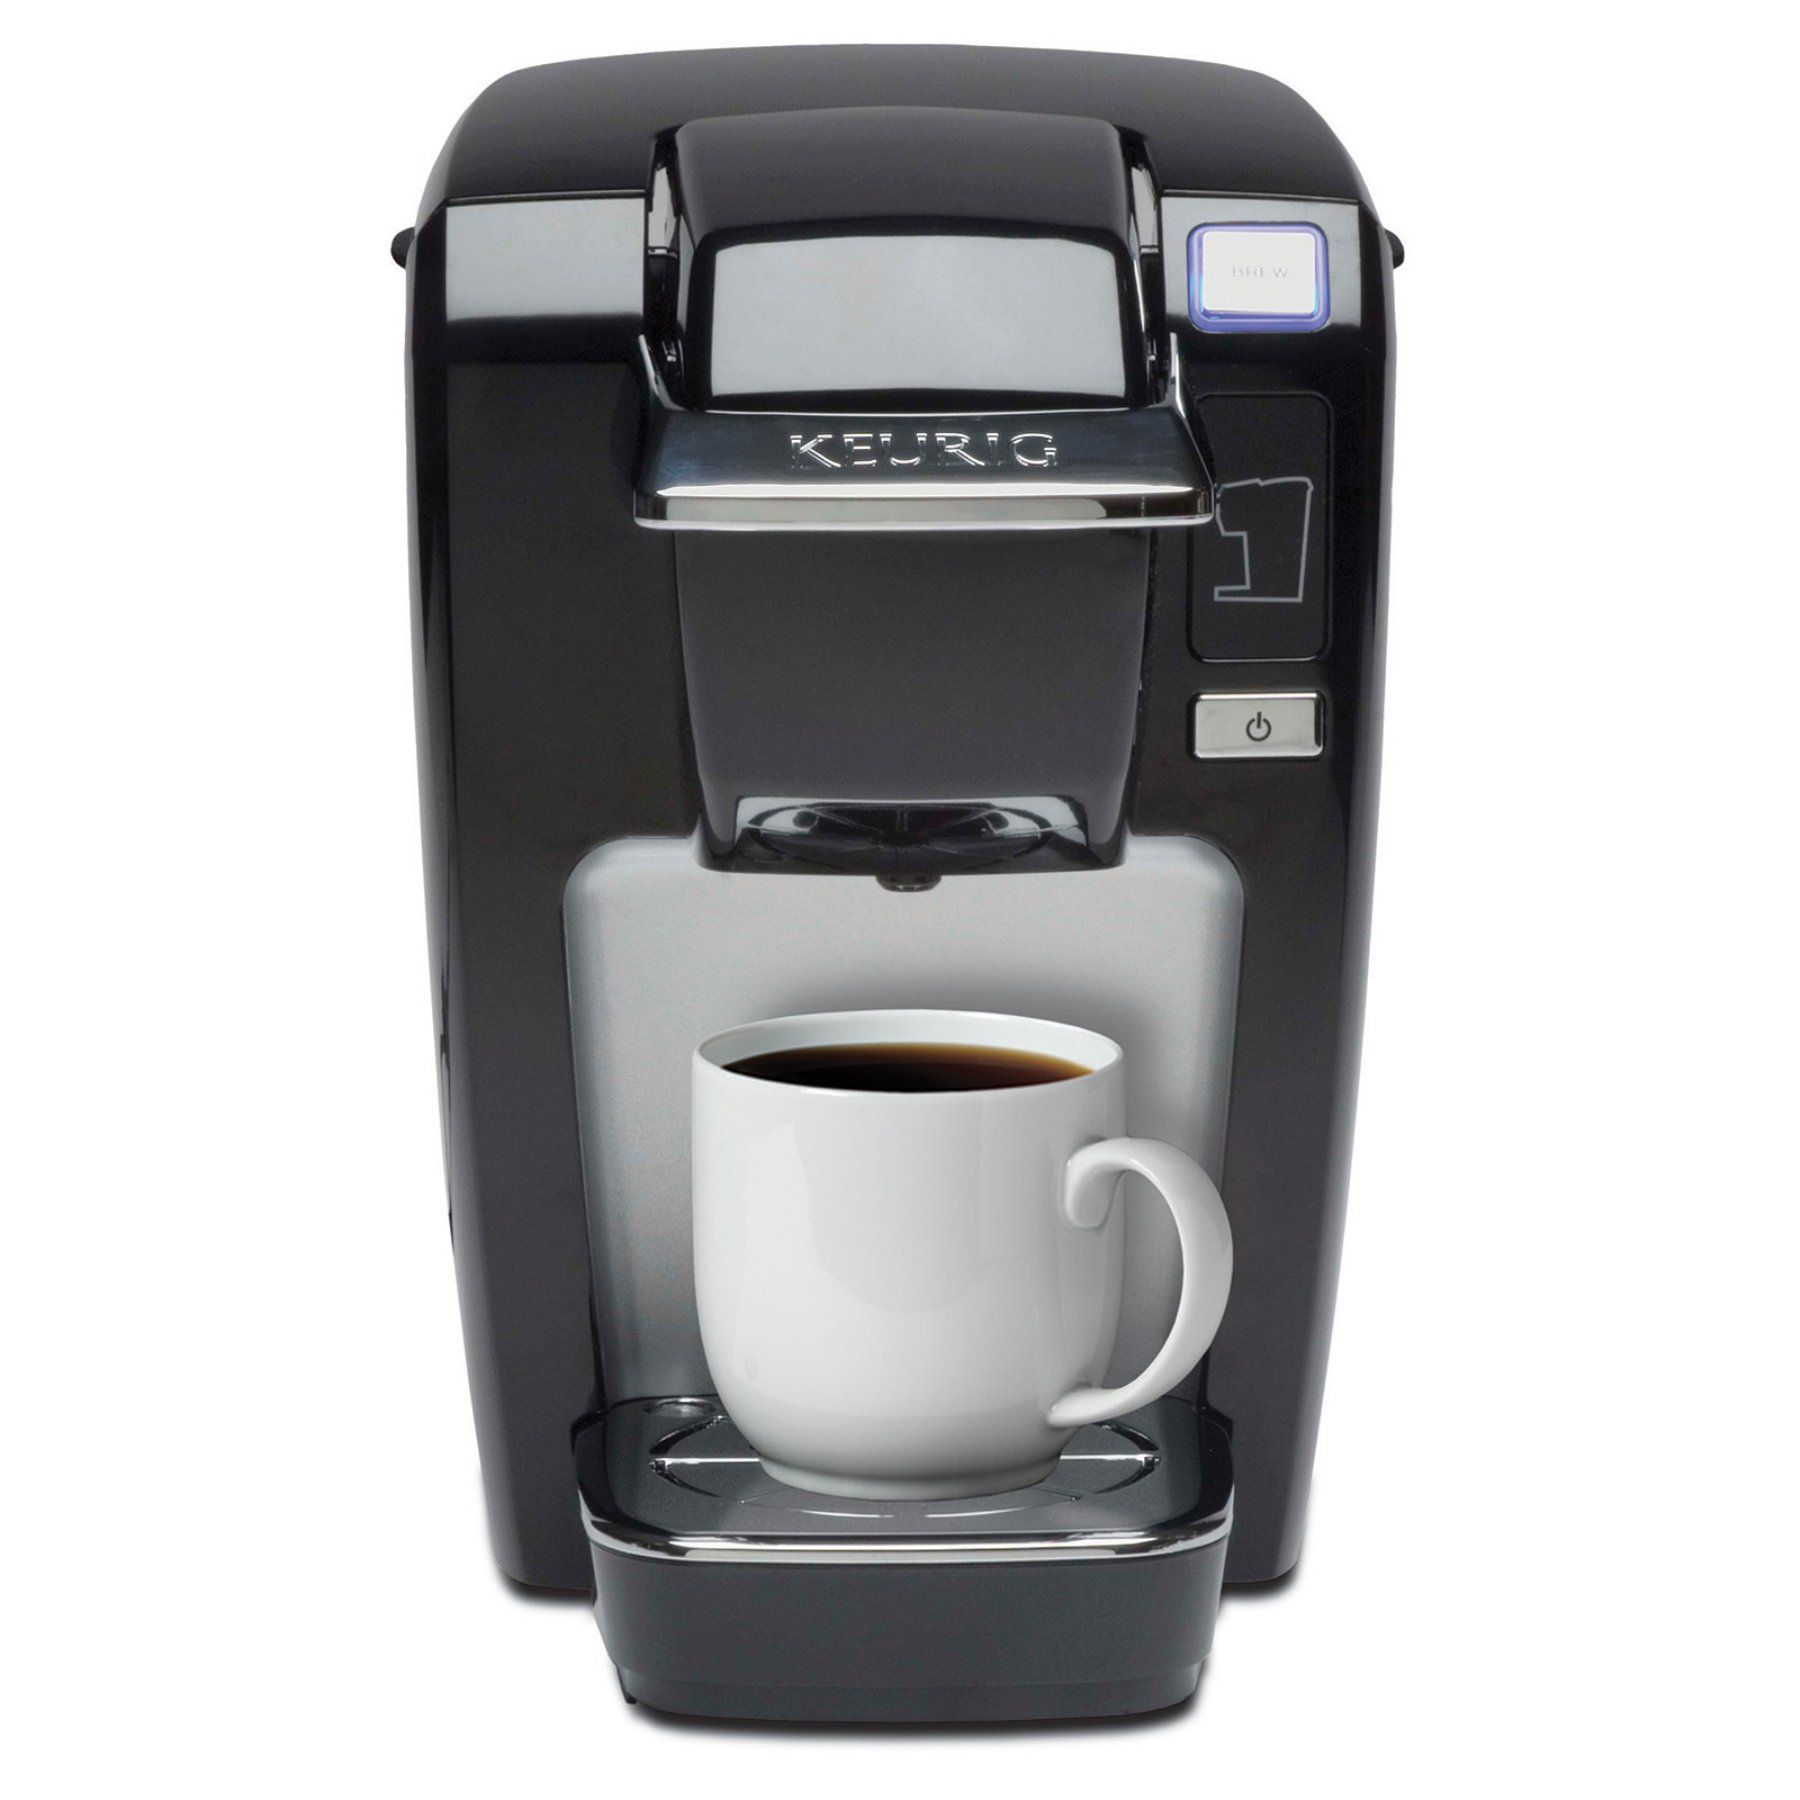 Keurig K15 Coffee Brewer Black 119249 (With images